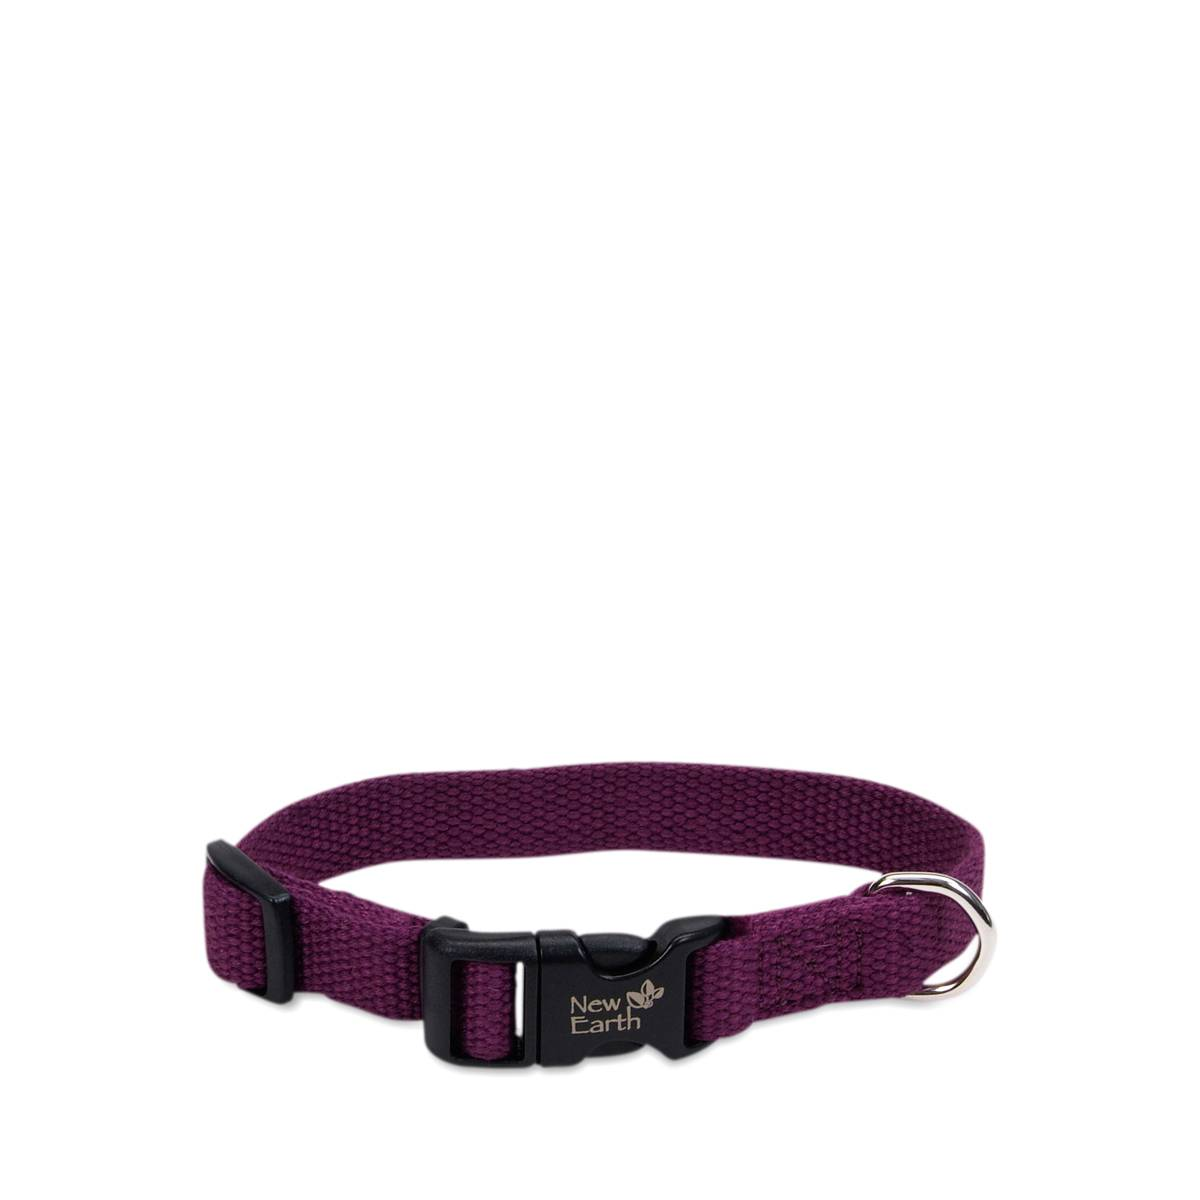 "Eggplant 5/8"" Soy Adjustable Collar by New Earth - Thrive Market"